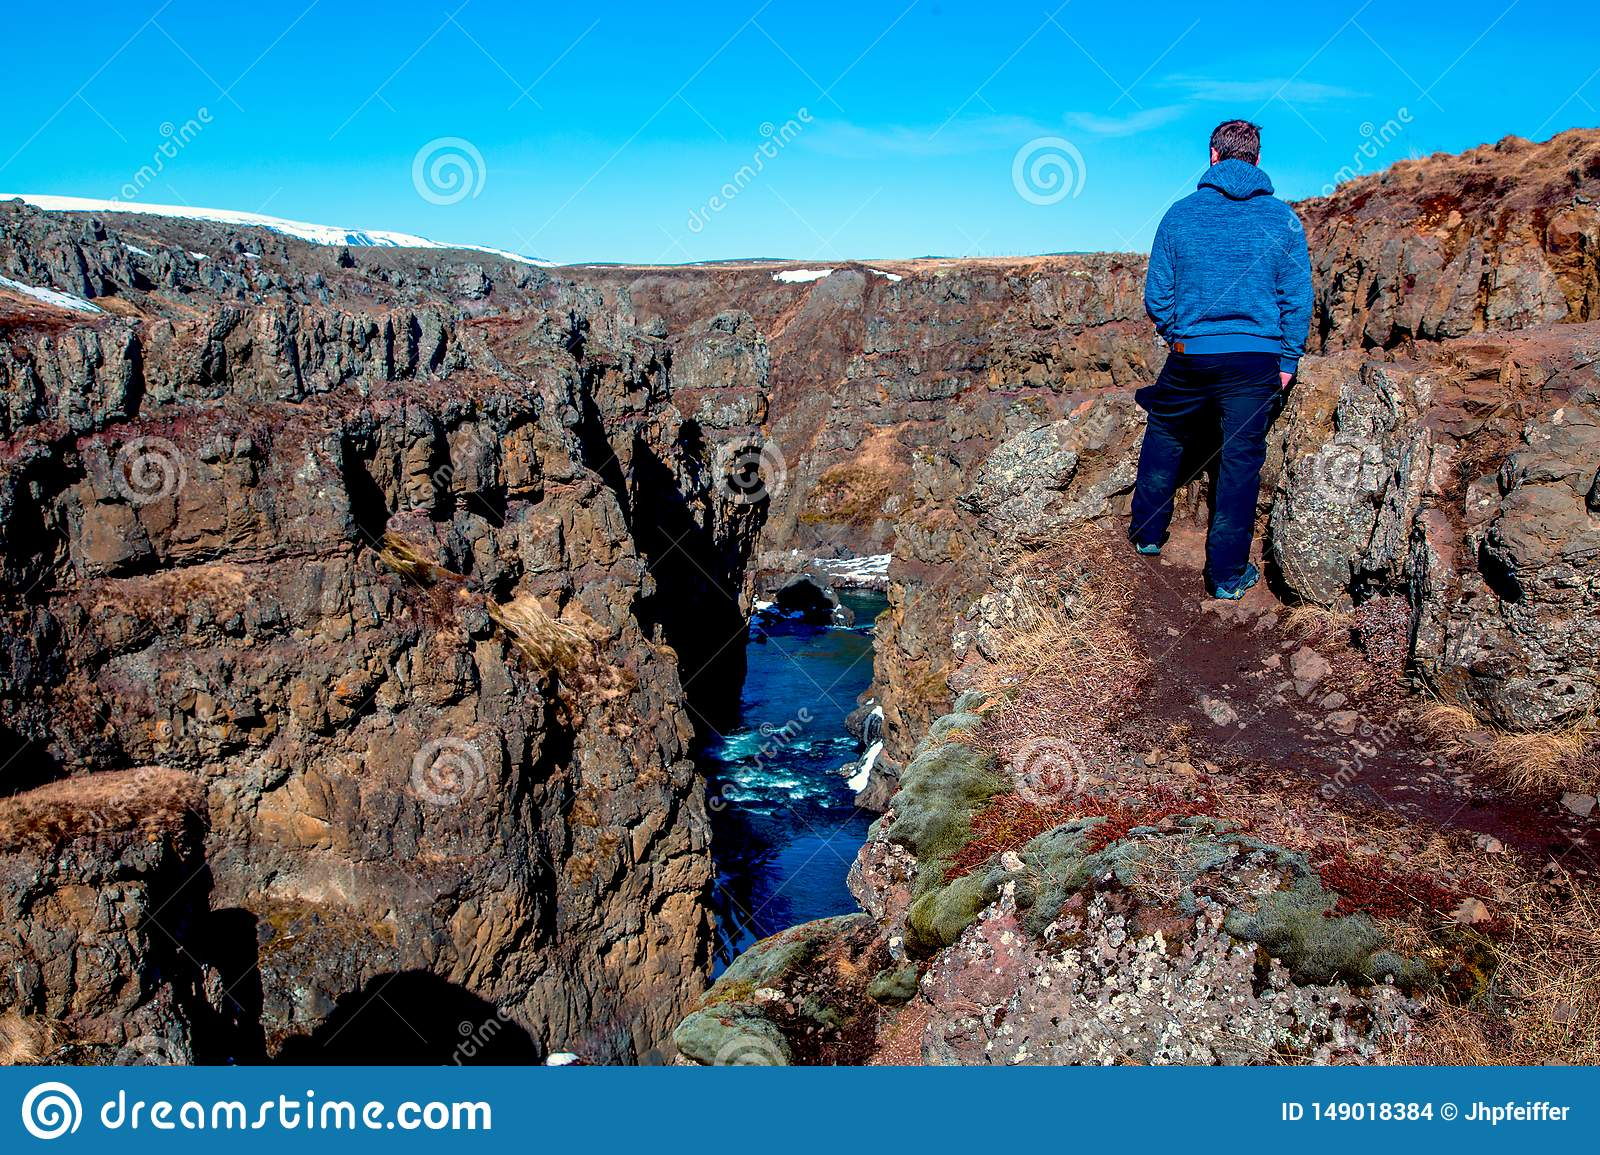 Man looks at a gorge causing a river to flow